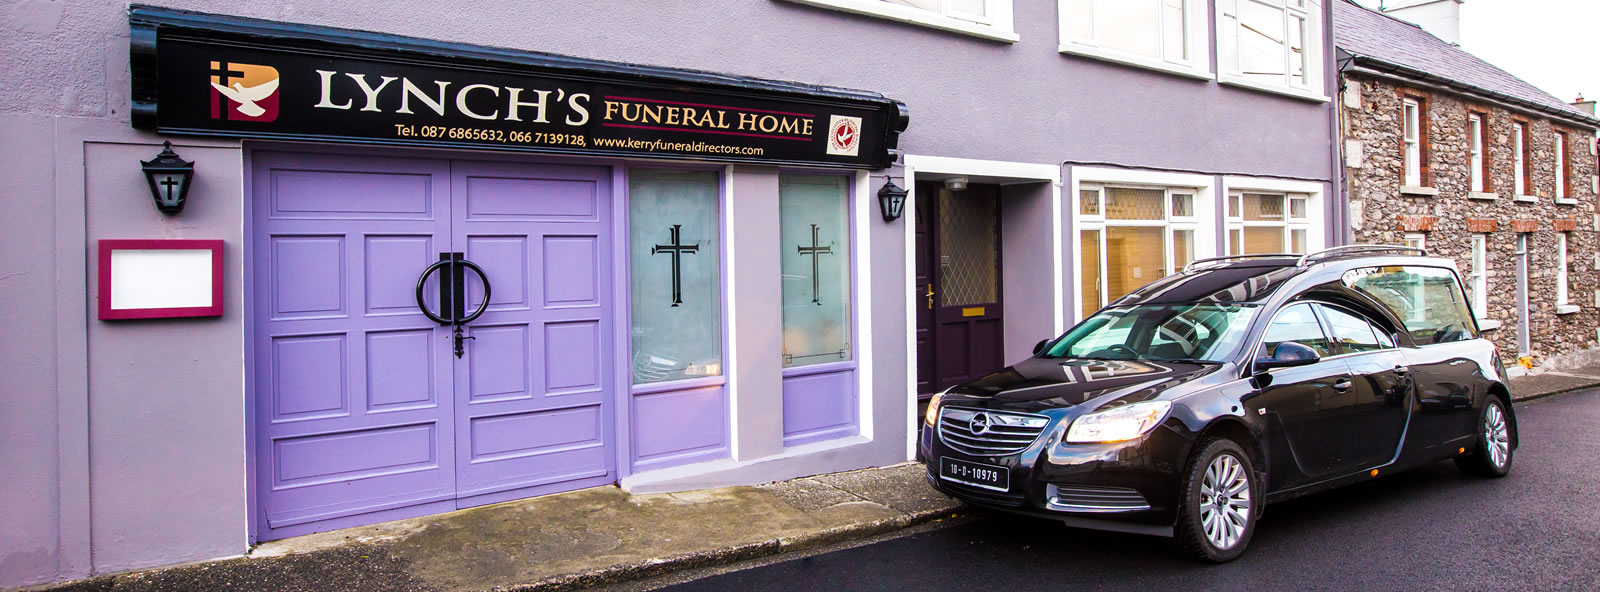 Funeral Home located in Castlegregory